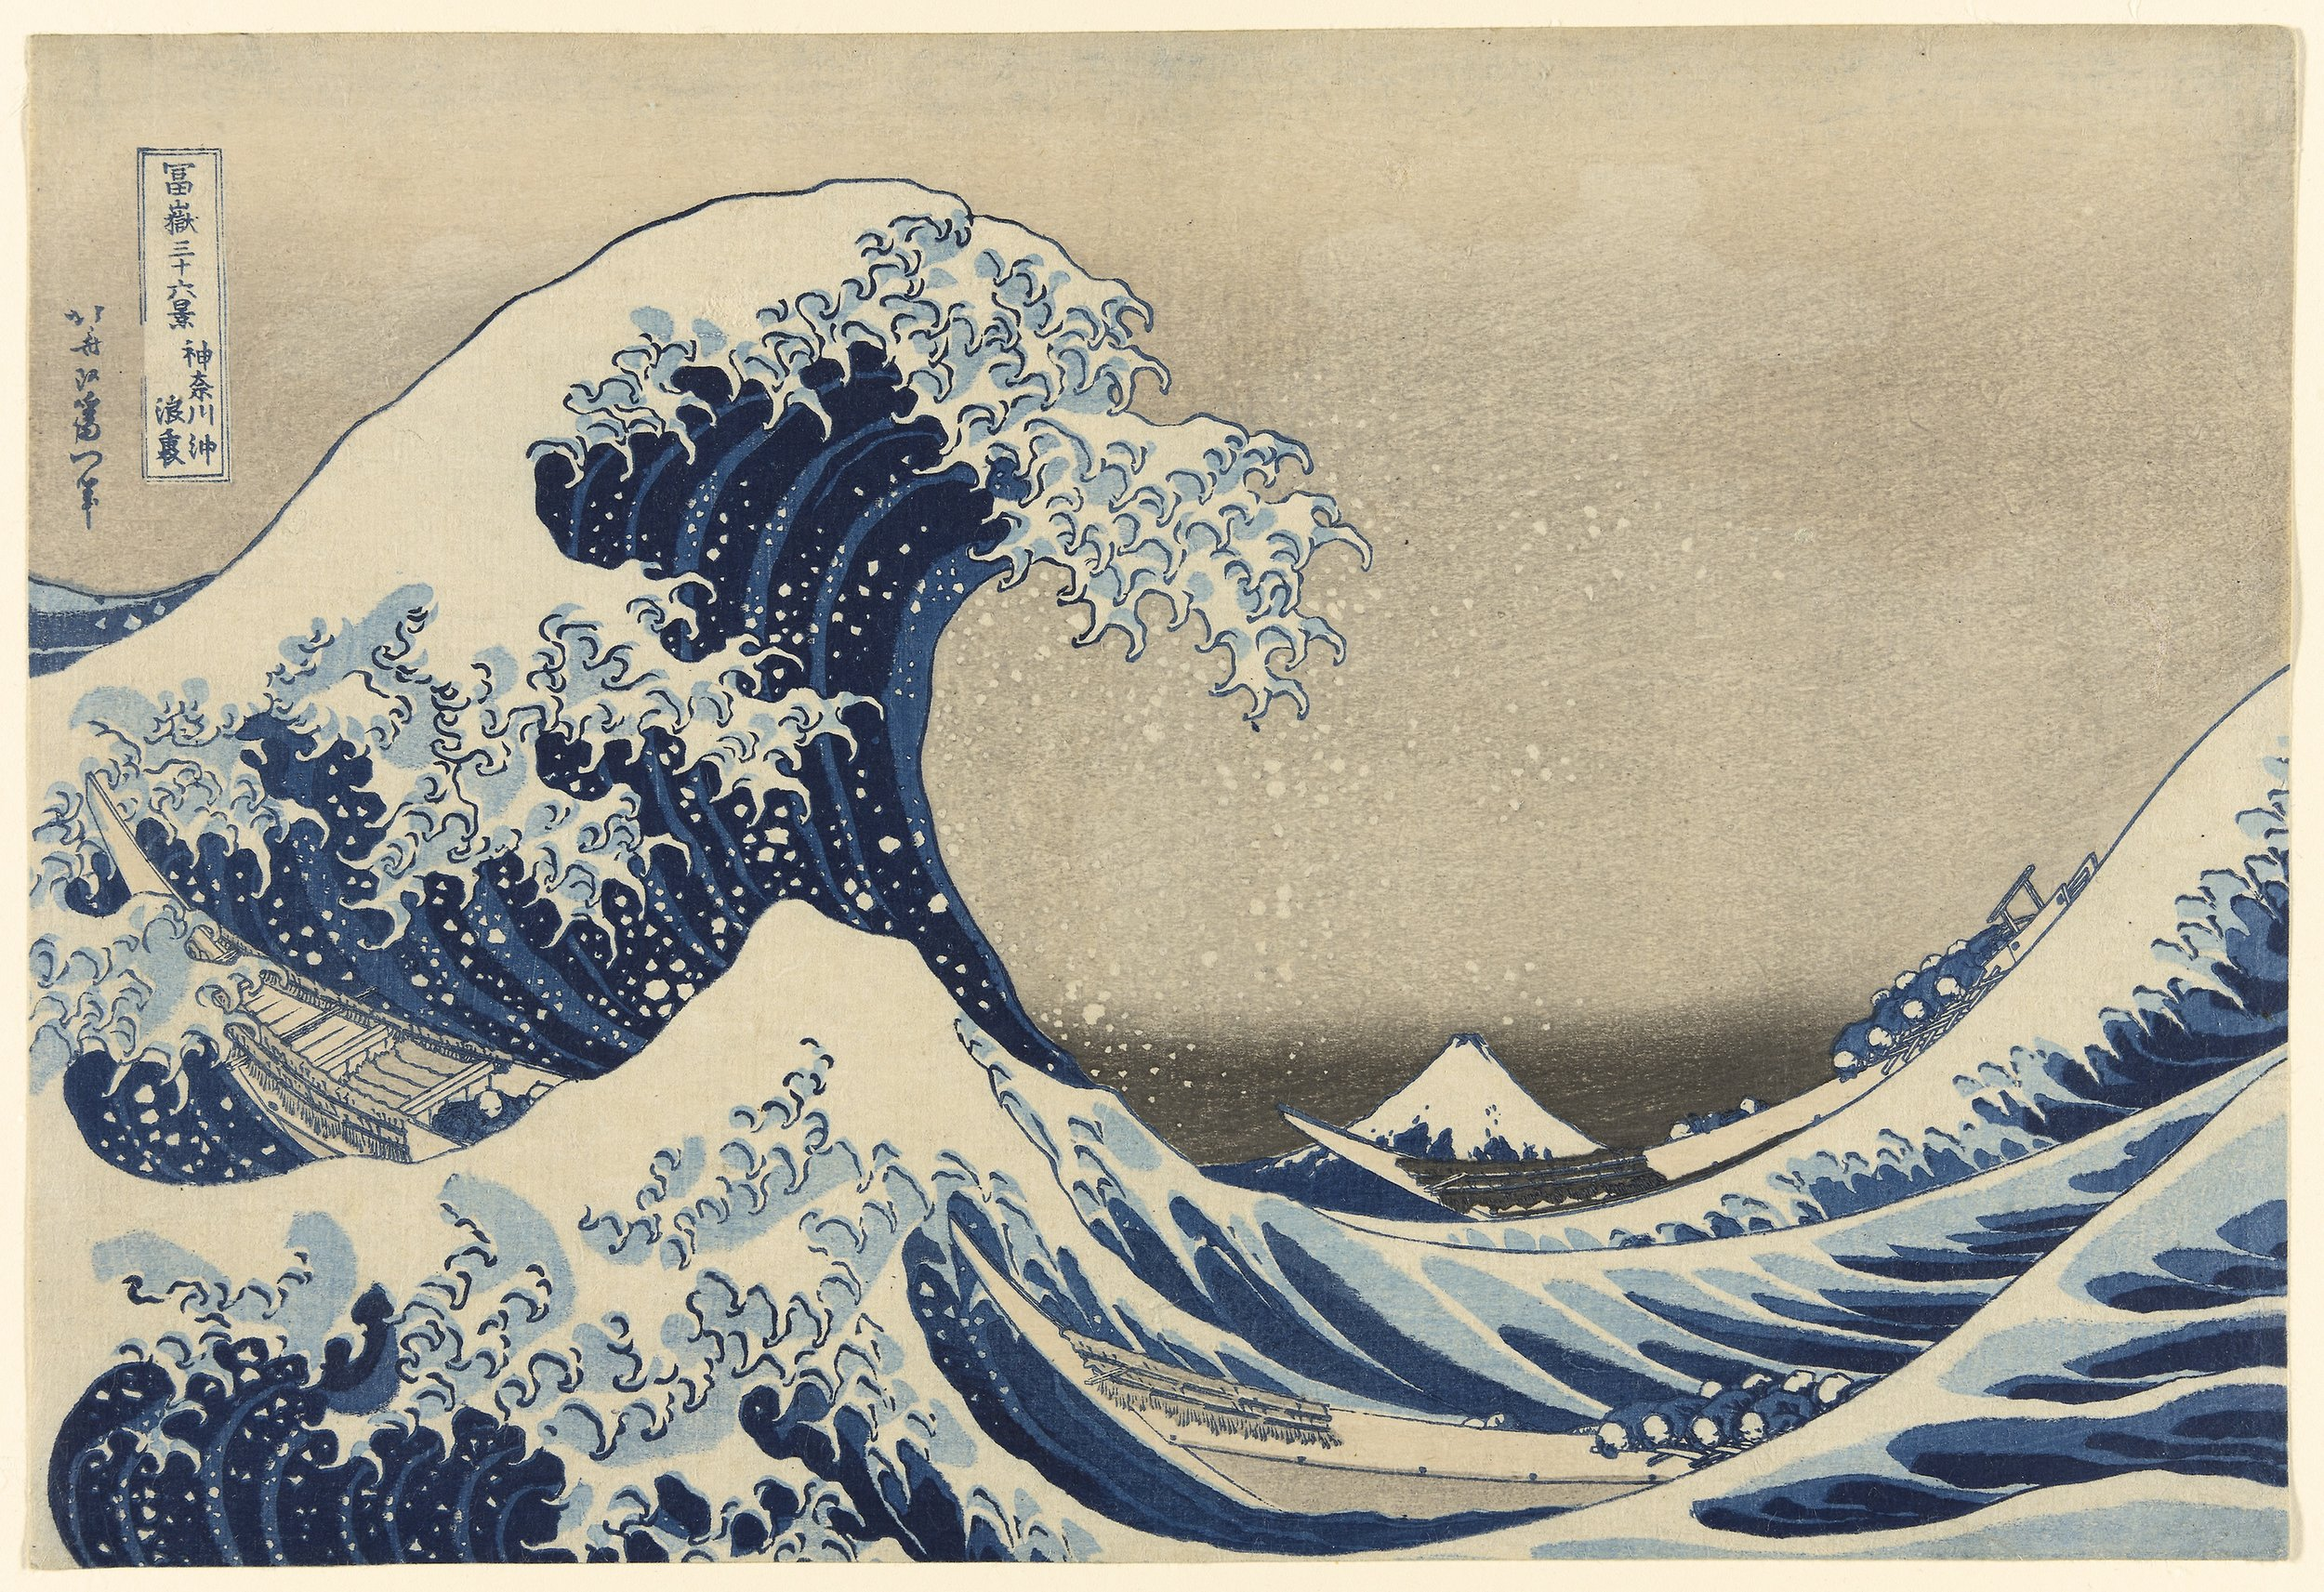 "Katsushika Hokusai (Japanese, 1760-1849).  Under the Wave off Kanagawa (Kanagawa oki nami ura), also known as The Great Wave, from the series ""Thirty-Six Views of Mount Fuji (Fugaku sanjurokkei).""  1830-33. Color woodblock print; oban. 25.4 × 37.6 cm (10 × 14 3/4 in.). The Art Institute of Chicago. Clarence Buckingham Collection. 1925.3245.  https://www.artic.edu/artworks/24645/"